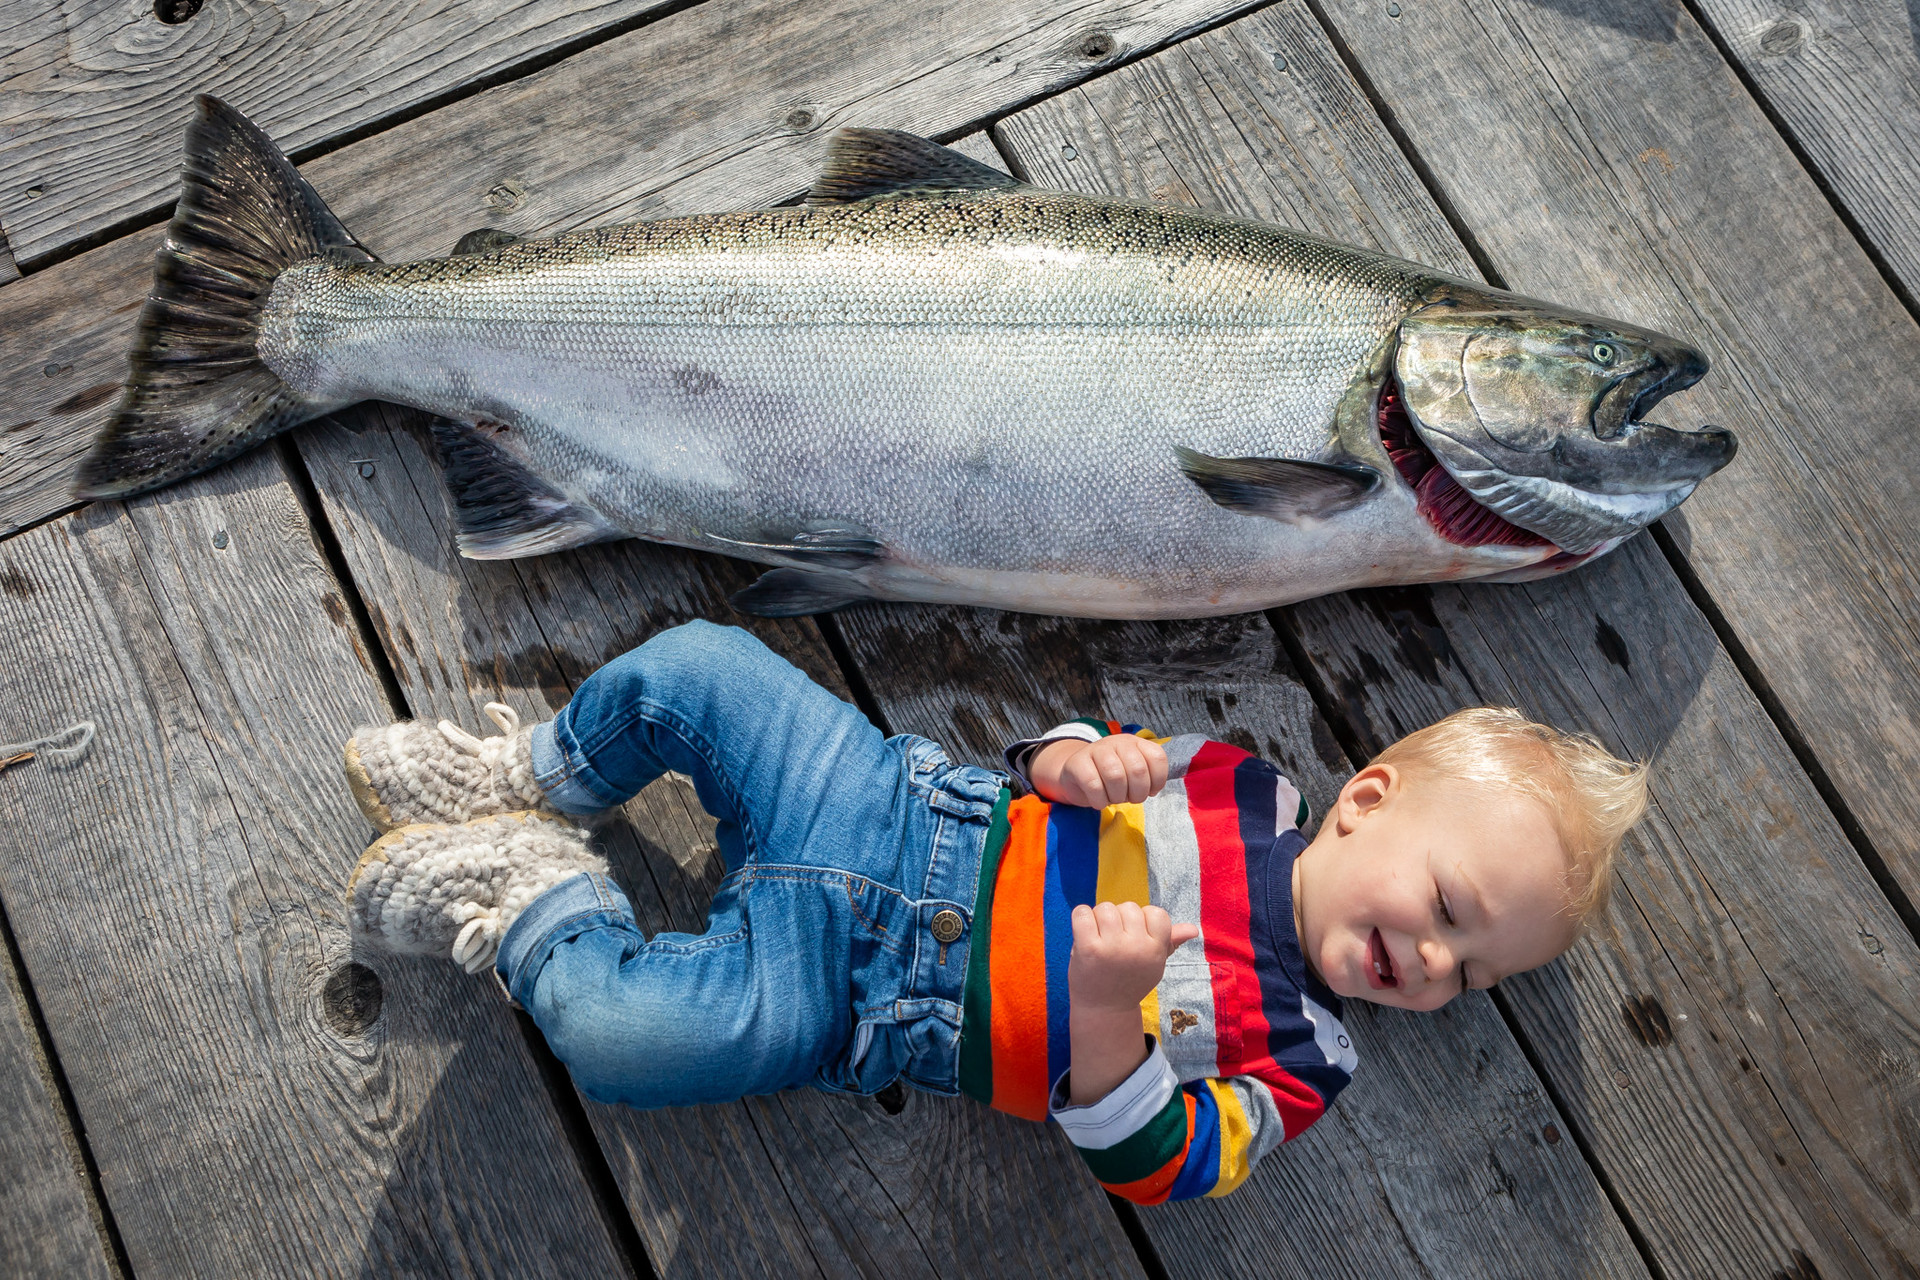 057_112118_VictoriaBC_Carroll_8908.jpg